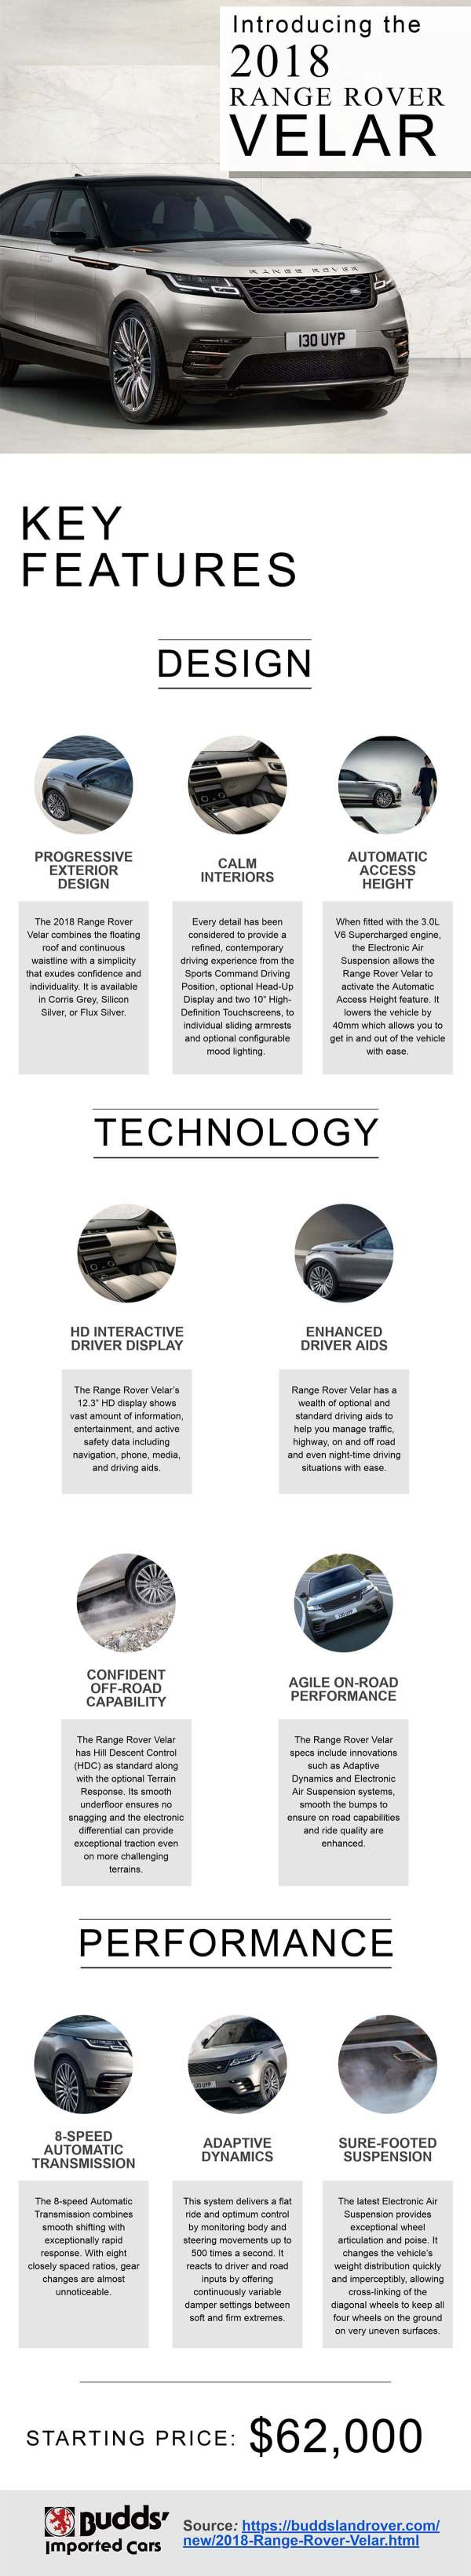 2018_Range_Rover_Velar_Features-infographic-galleryr